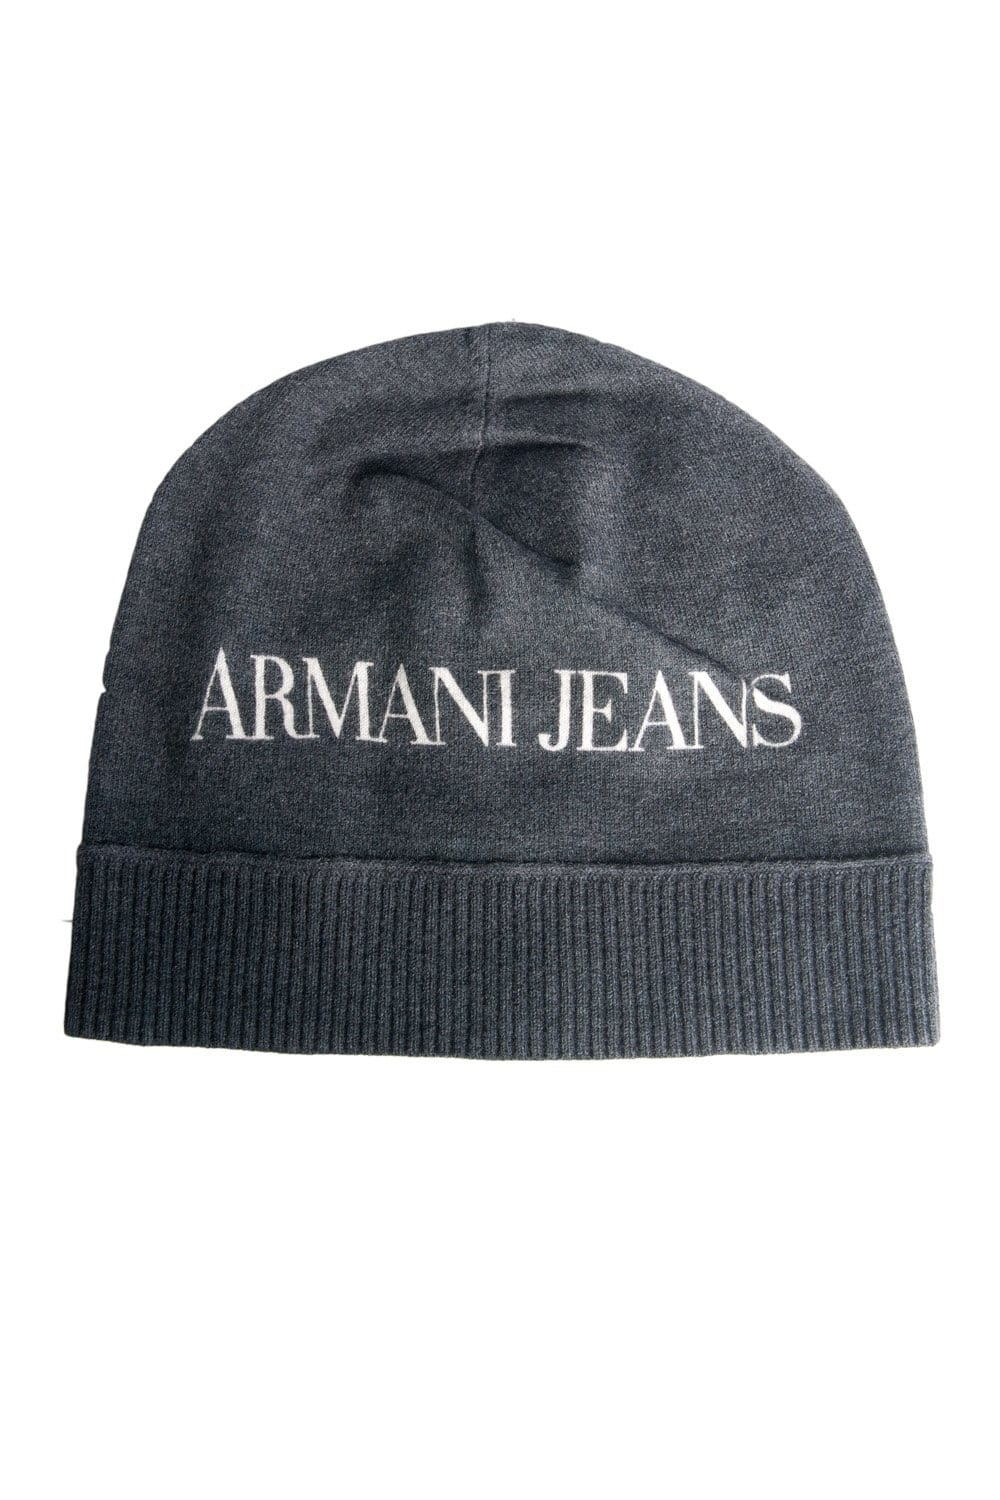 Armani Jeans Beanie Hat in Black and Navy Blue U6411C2 - Accessories ... 72e625ab4ad